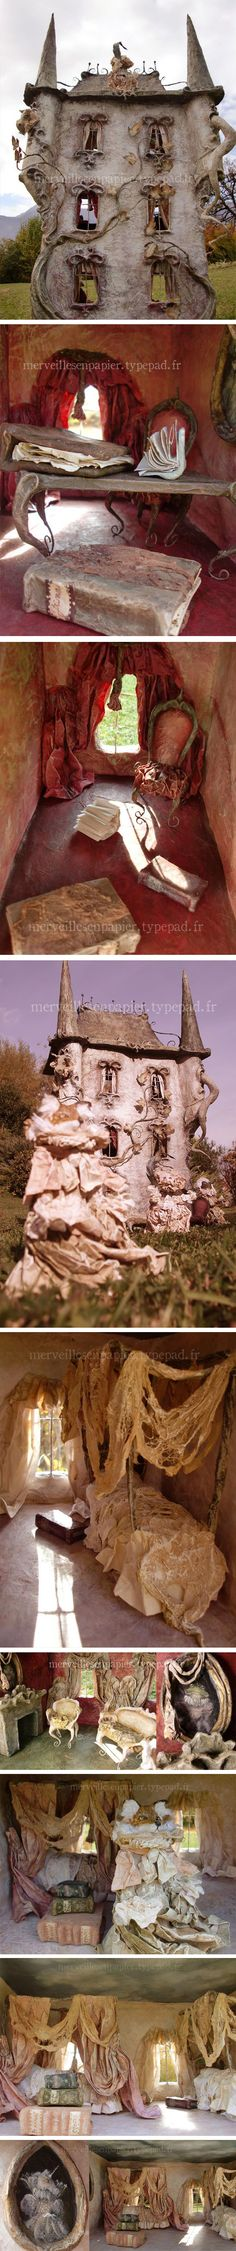 "Laititia Mieral Paper Mache Dollhouse      ""Welcome to the haunted or enchanted doll house, This is an ""art toy"" for children or adults every piece of furniture can be manipulated ,the characters as well , nothing is glued.""           All content copyright © Laititia Mieral       See more of this amazing dollhouse:  merveillesenpapie..."